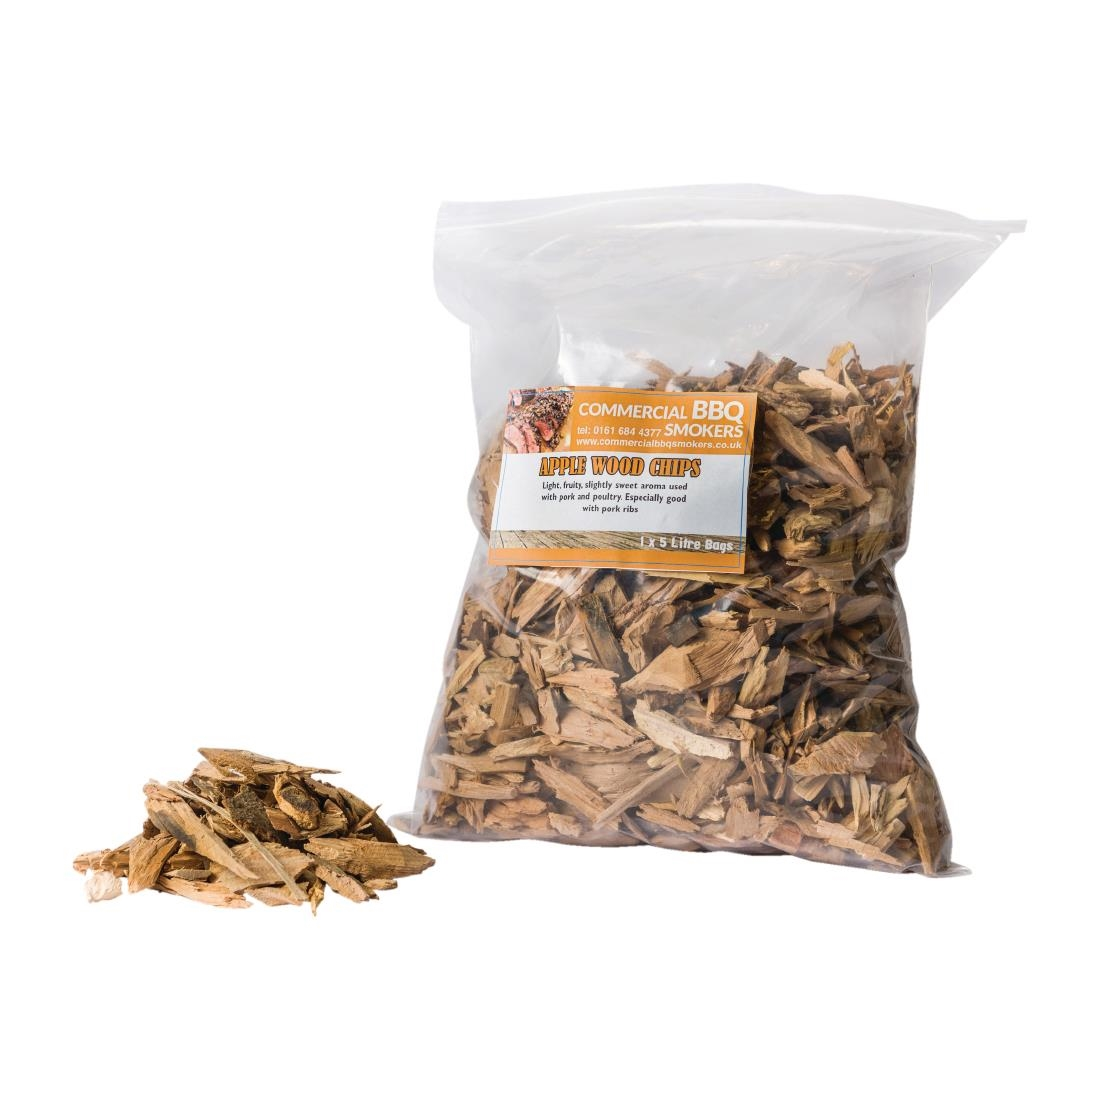 Blackwood Smoking Chips Apple 5 Litre Bags (Pack of 4) Pack of 4